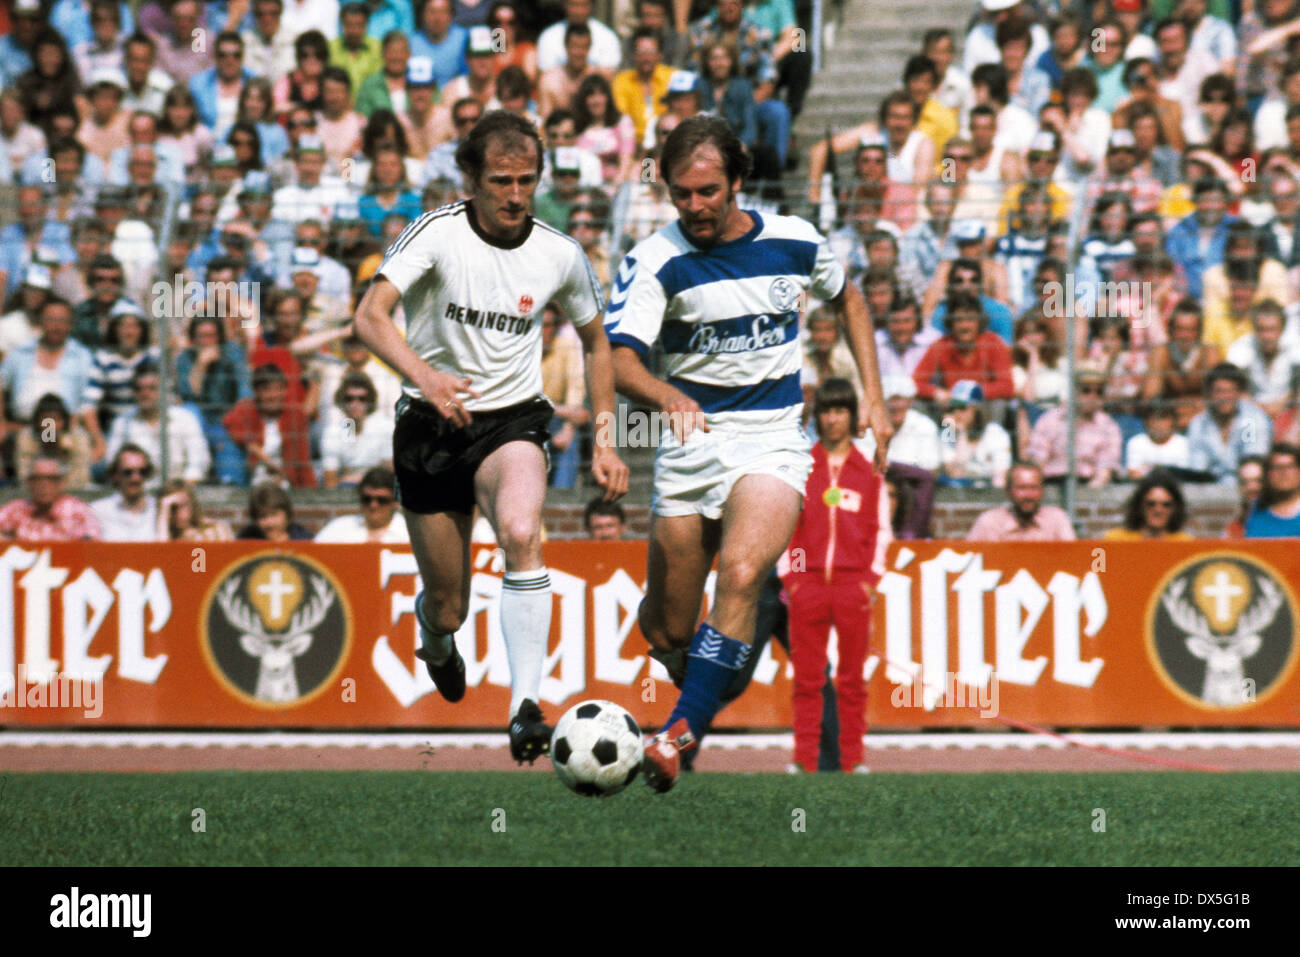 football, DFB Cup, 1974/1975, final, Niedersachsen Stadium in Hanover, Eintracht Frankfurt versus MSV Duisburg 1:0, scene of the match, Willi Neuberger (Eintracht) left and Rudolf Seliger (MSV) - Stock Image